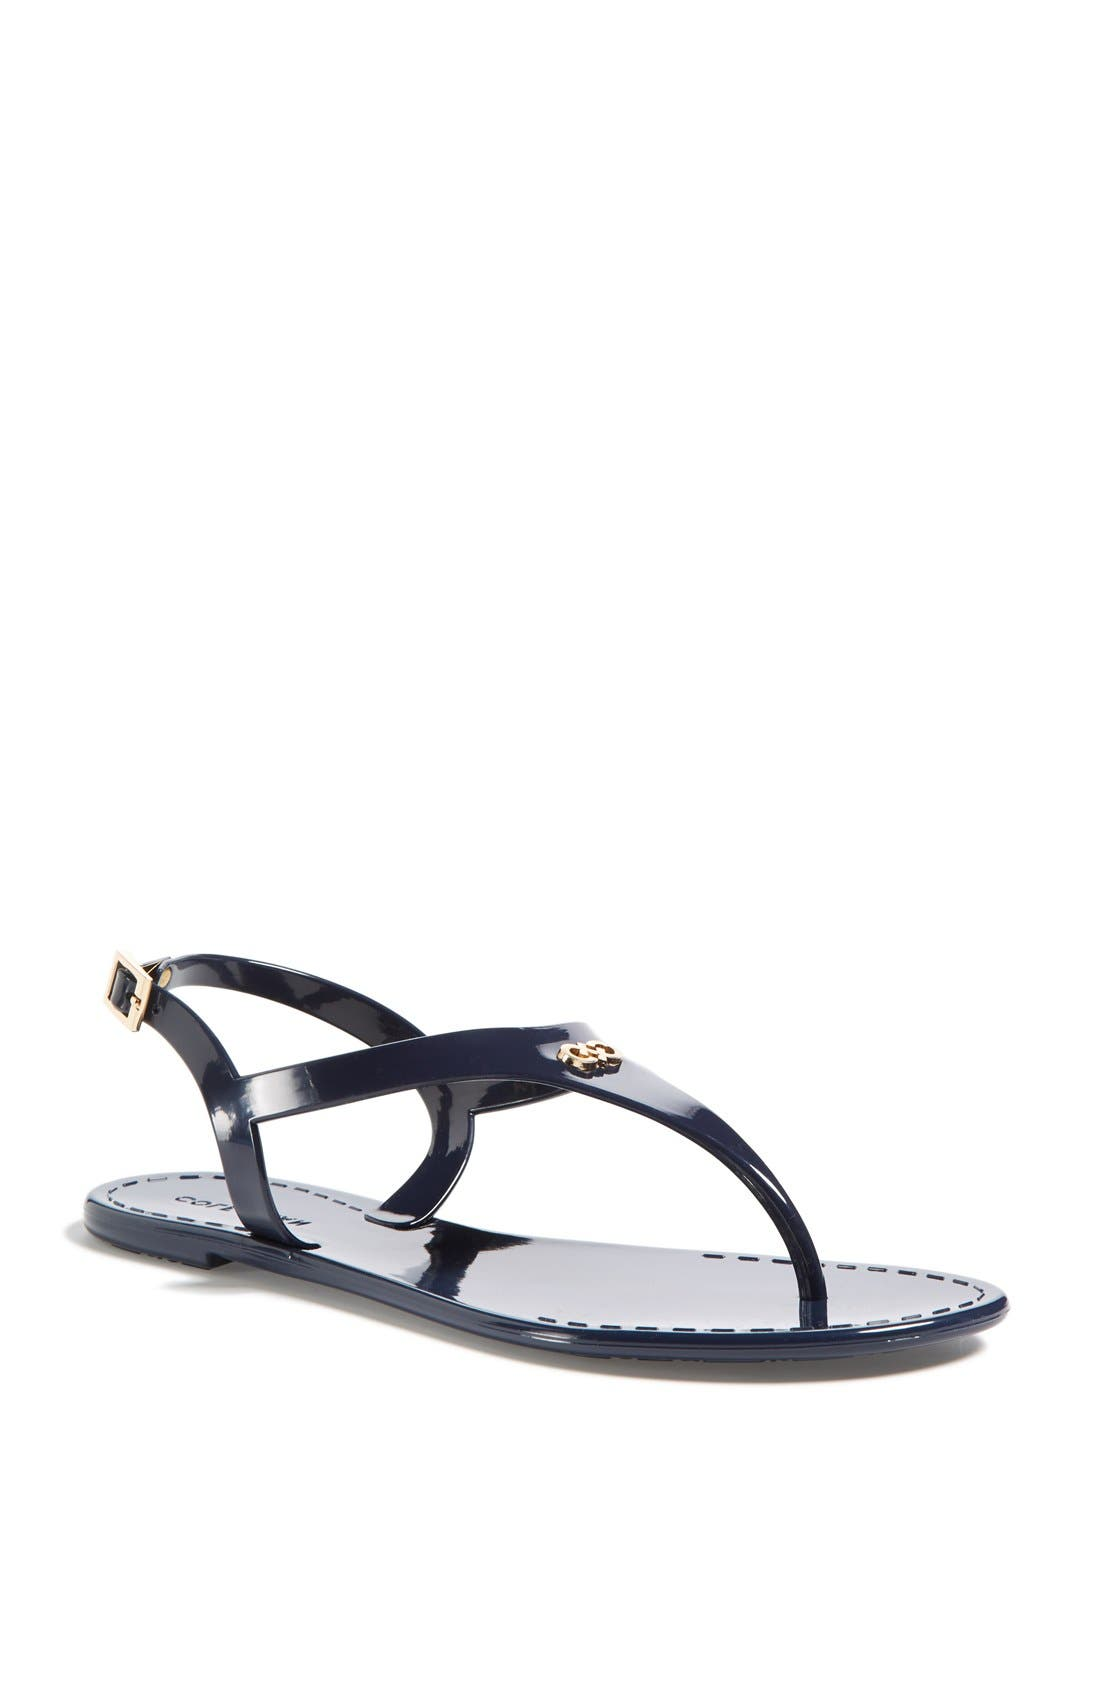 Main Image - Cole Haan Jelly Sandal